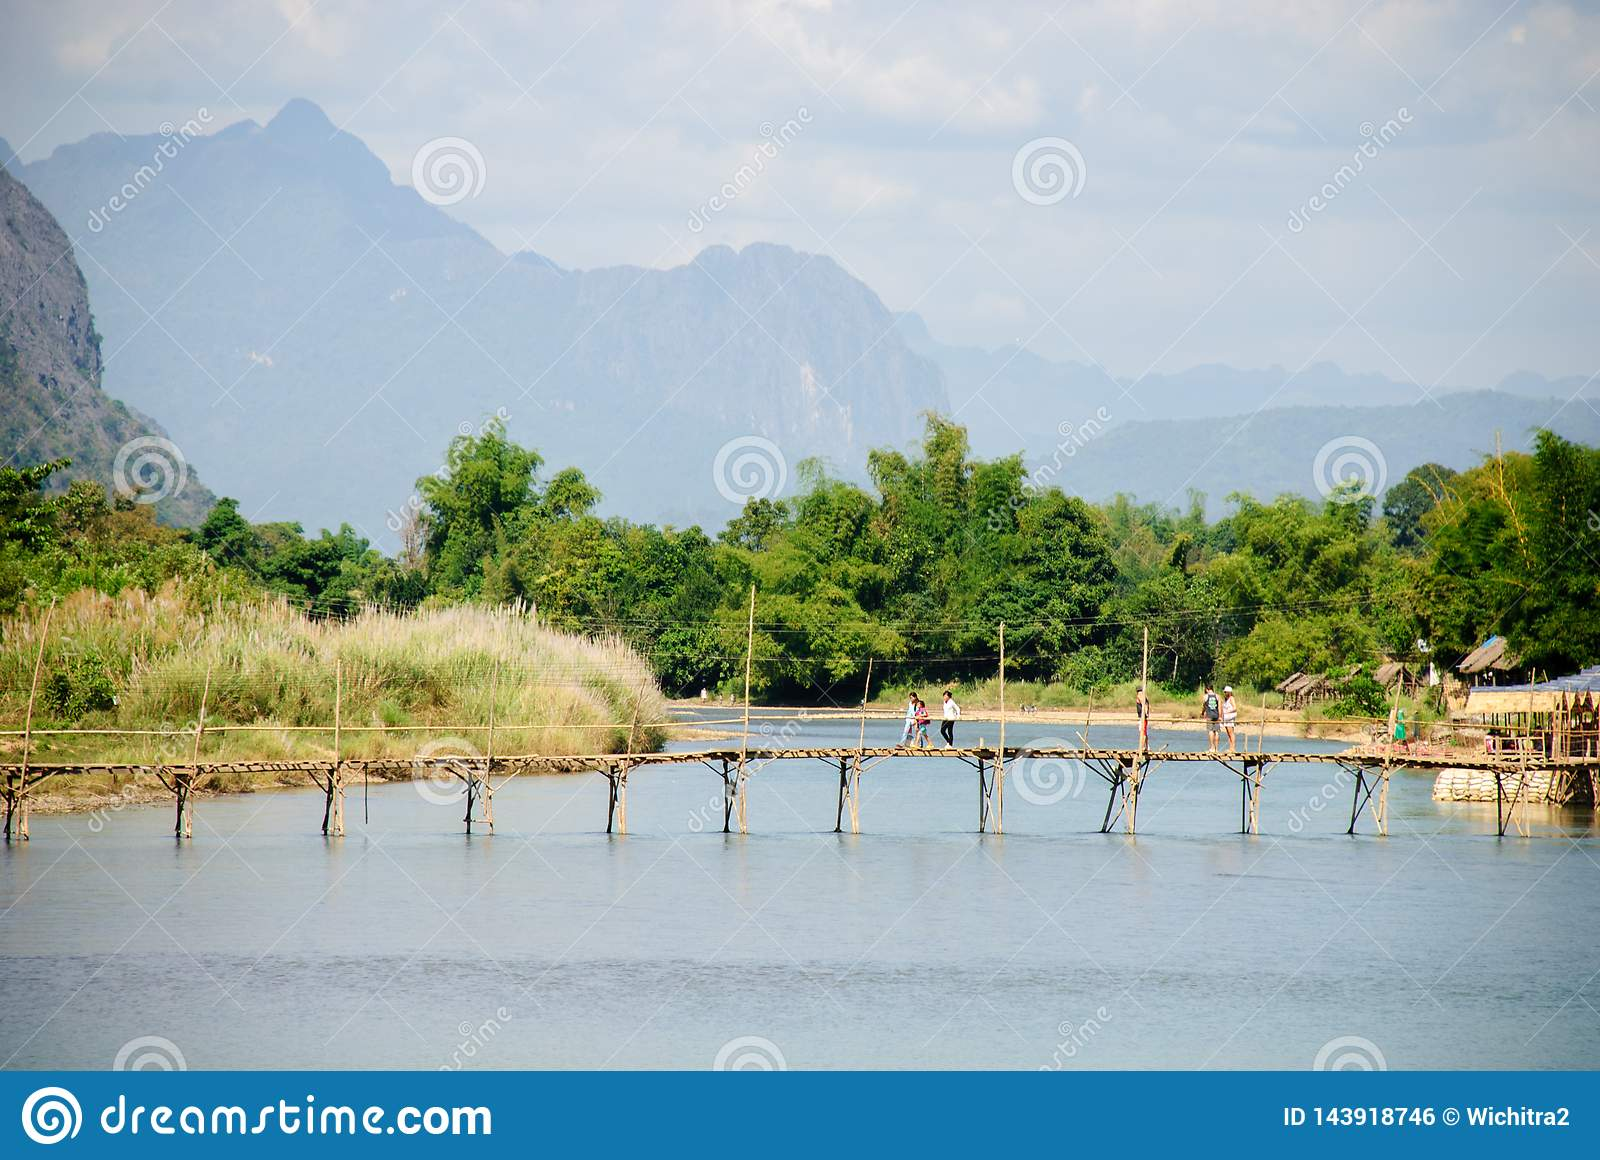 Nam Song river at Vang Vieng, Laos